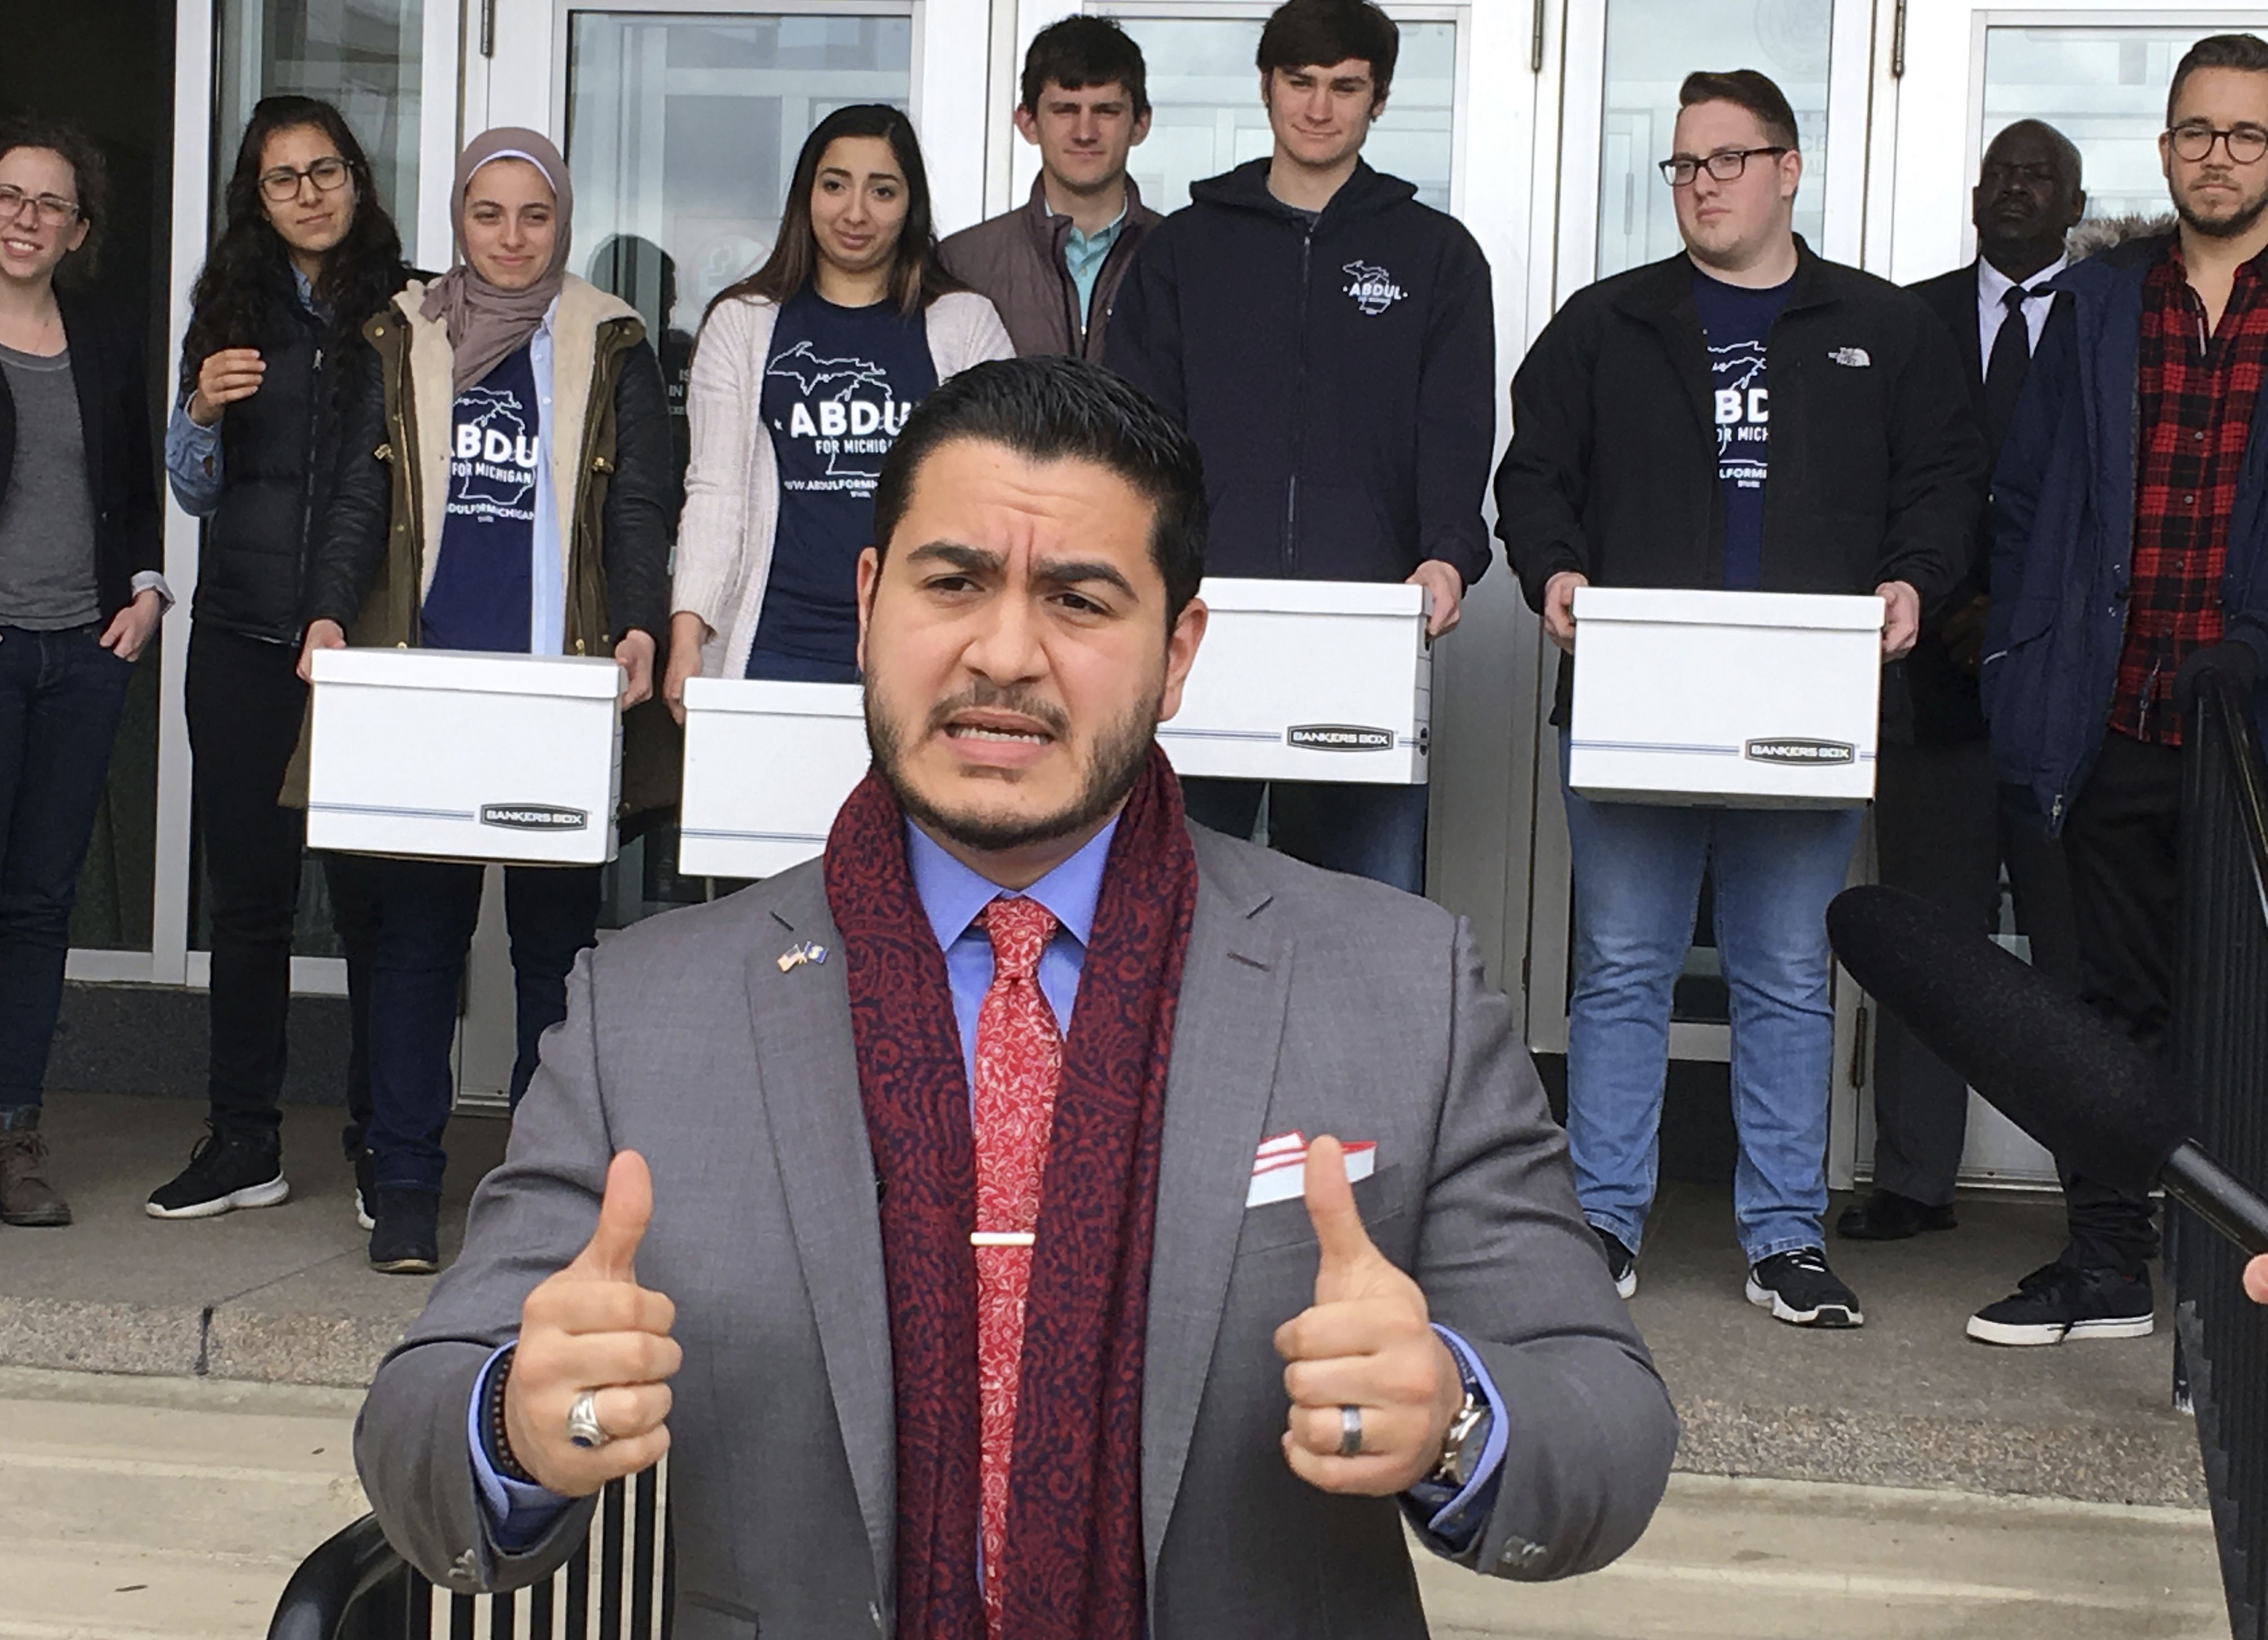 Democratic gubernatorial candidate Abdul El-Sayed speaks before submitting 24,000 nominating petitions to the Michigan Bureau of Elections, in Lansing, Mich.